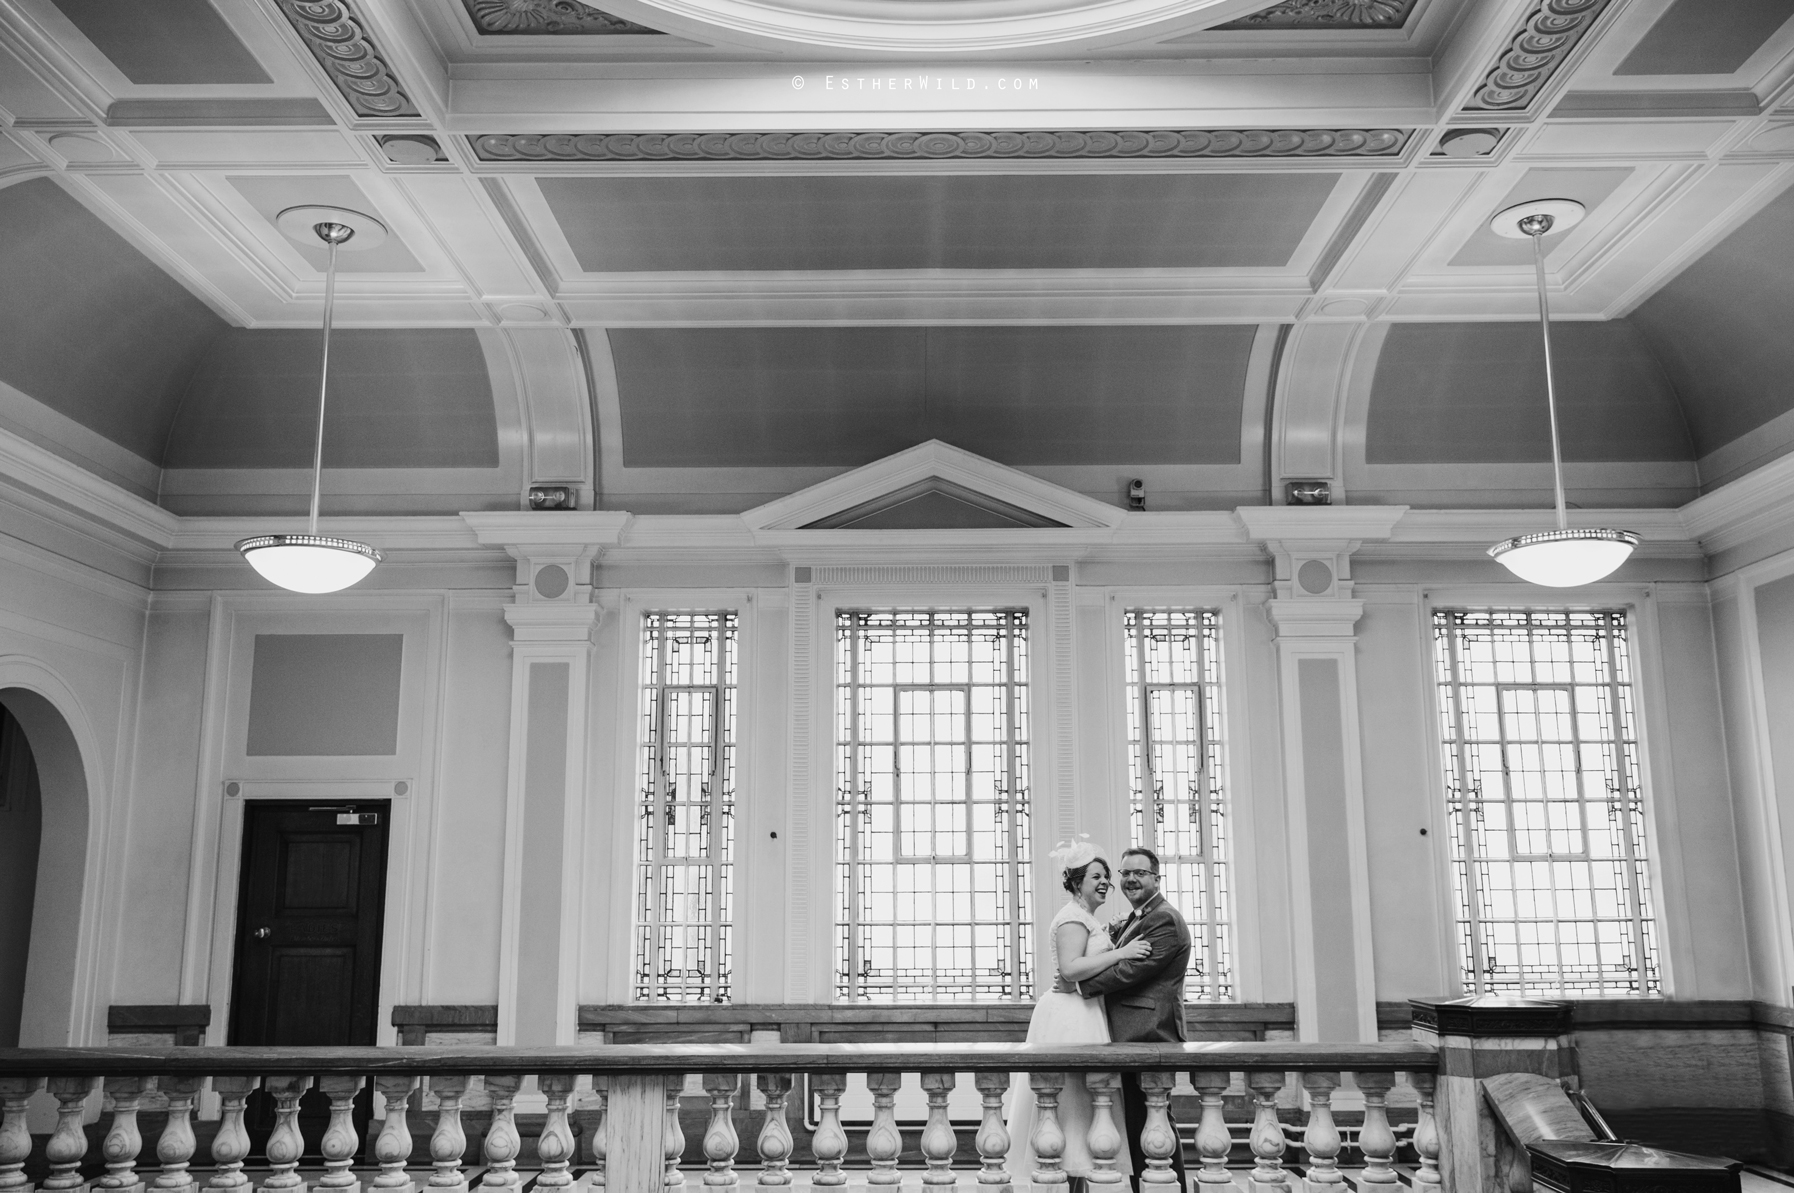 Islington_Town_Hall_Assembly_Hall_Council_Chamber_The_Star_Pub_London_Sacred_Wedding_Copyright_Esther_Wild_Photographer_IMG_0578-1.jpg